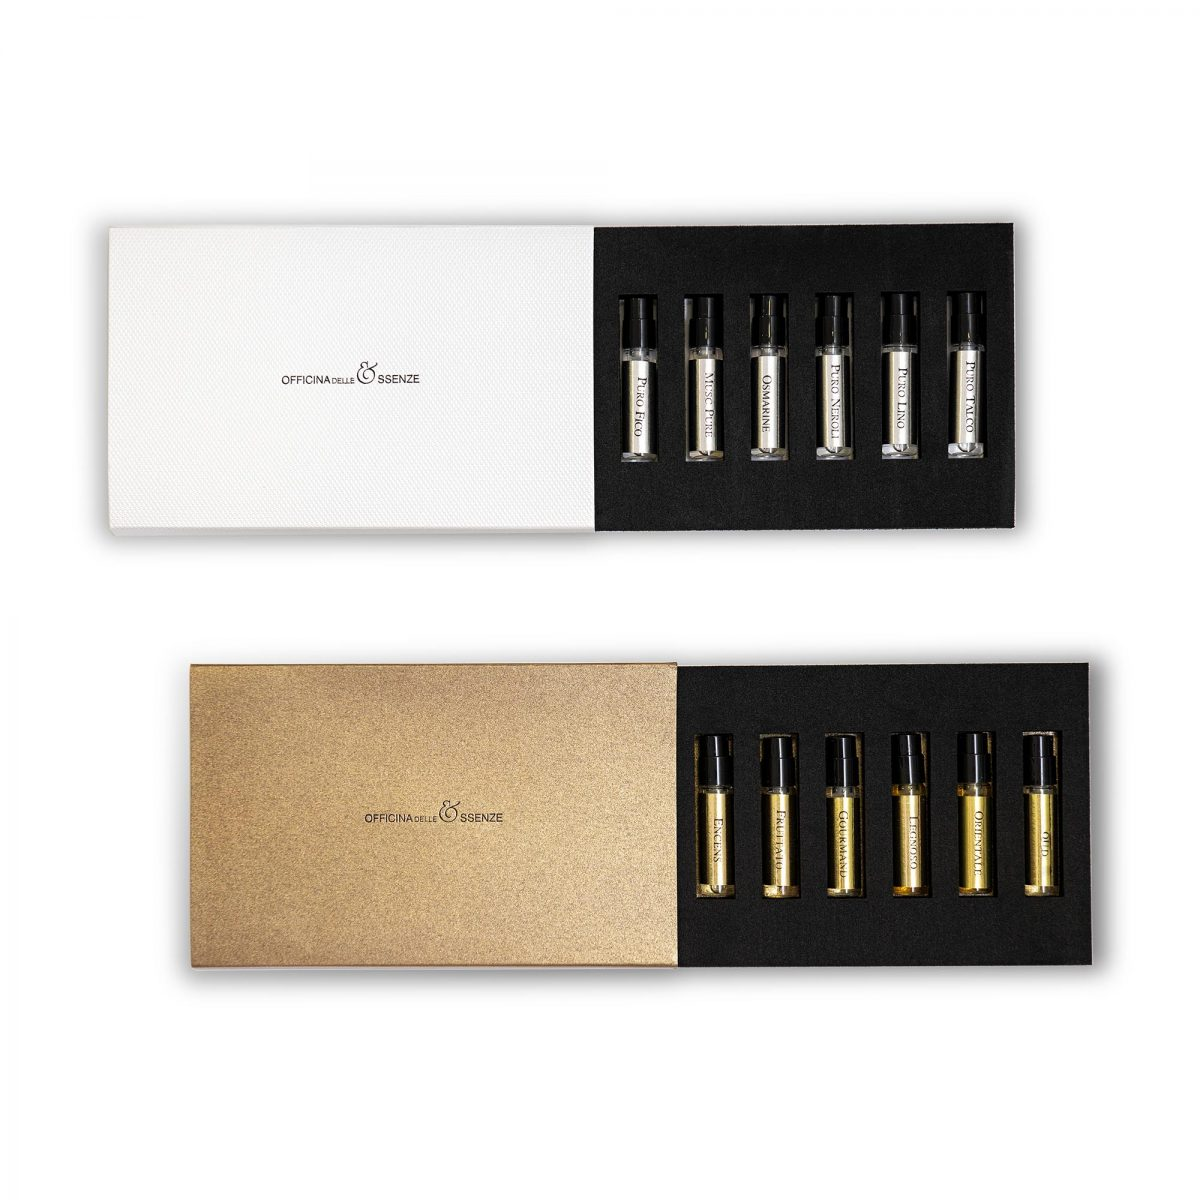 Discovery Kit sample Officina delle Essenze niche perfumes